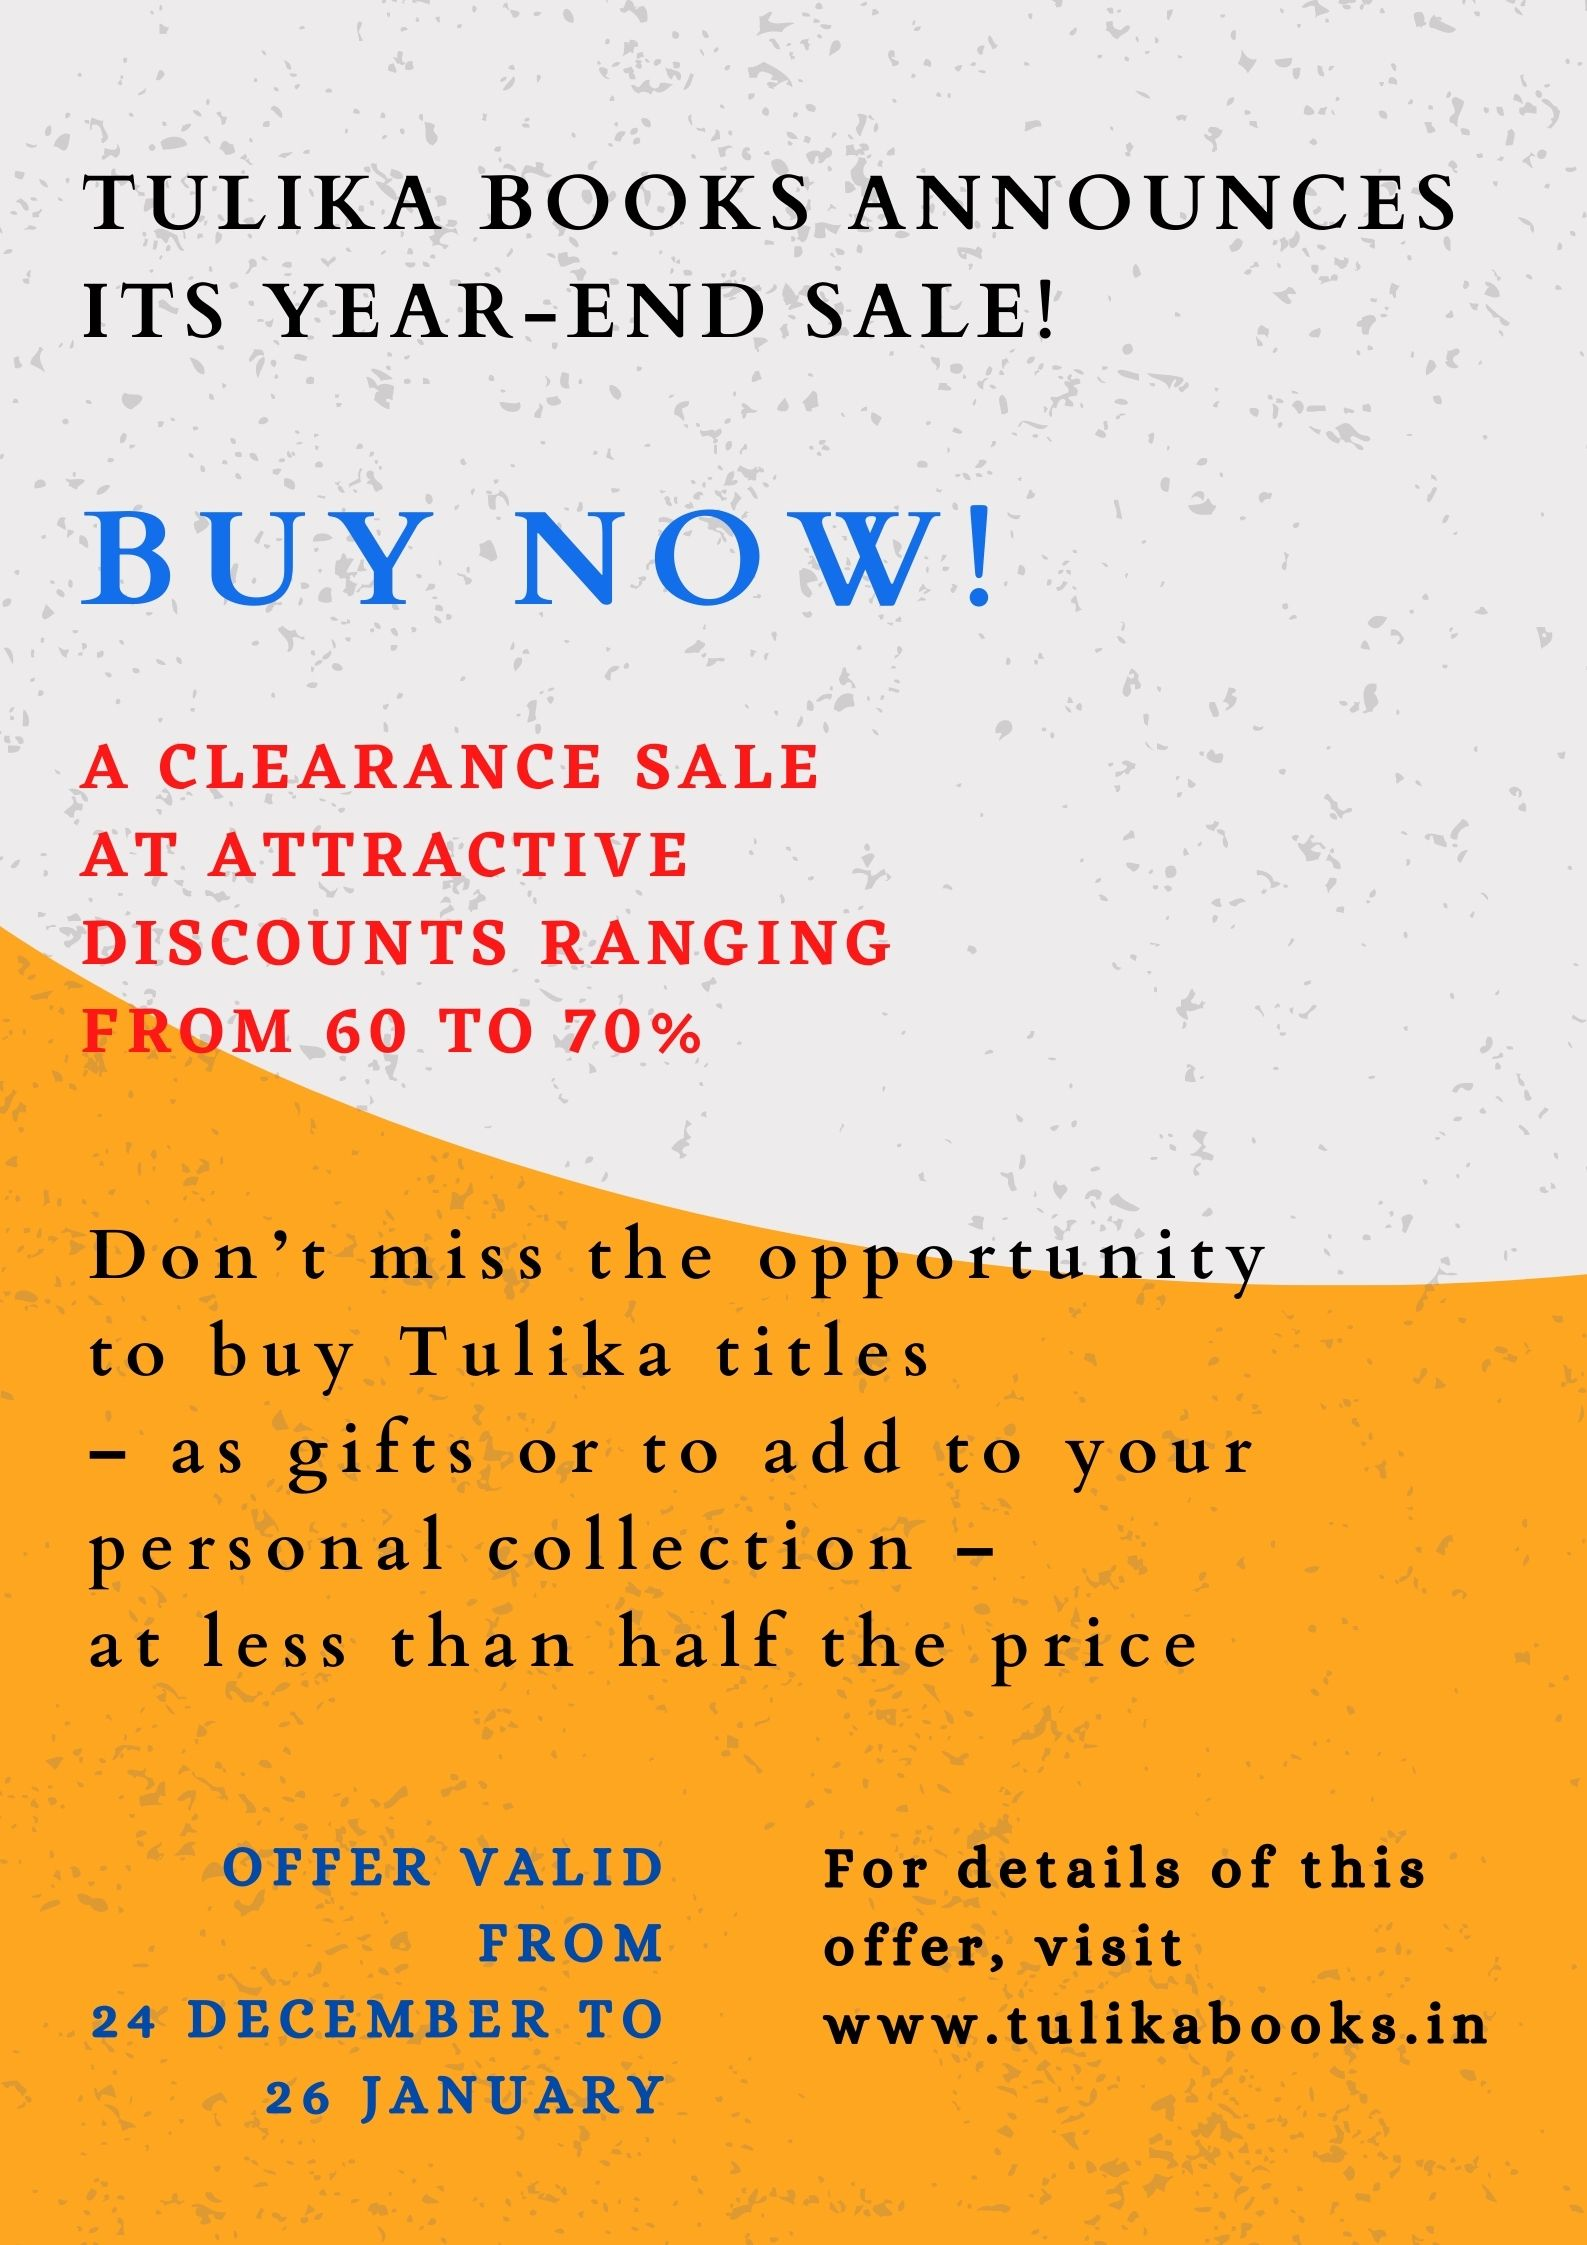 Tulika Books announces its year-end sale!